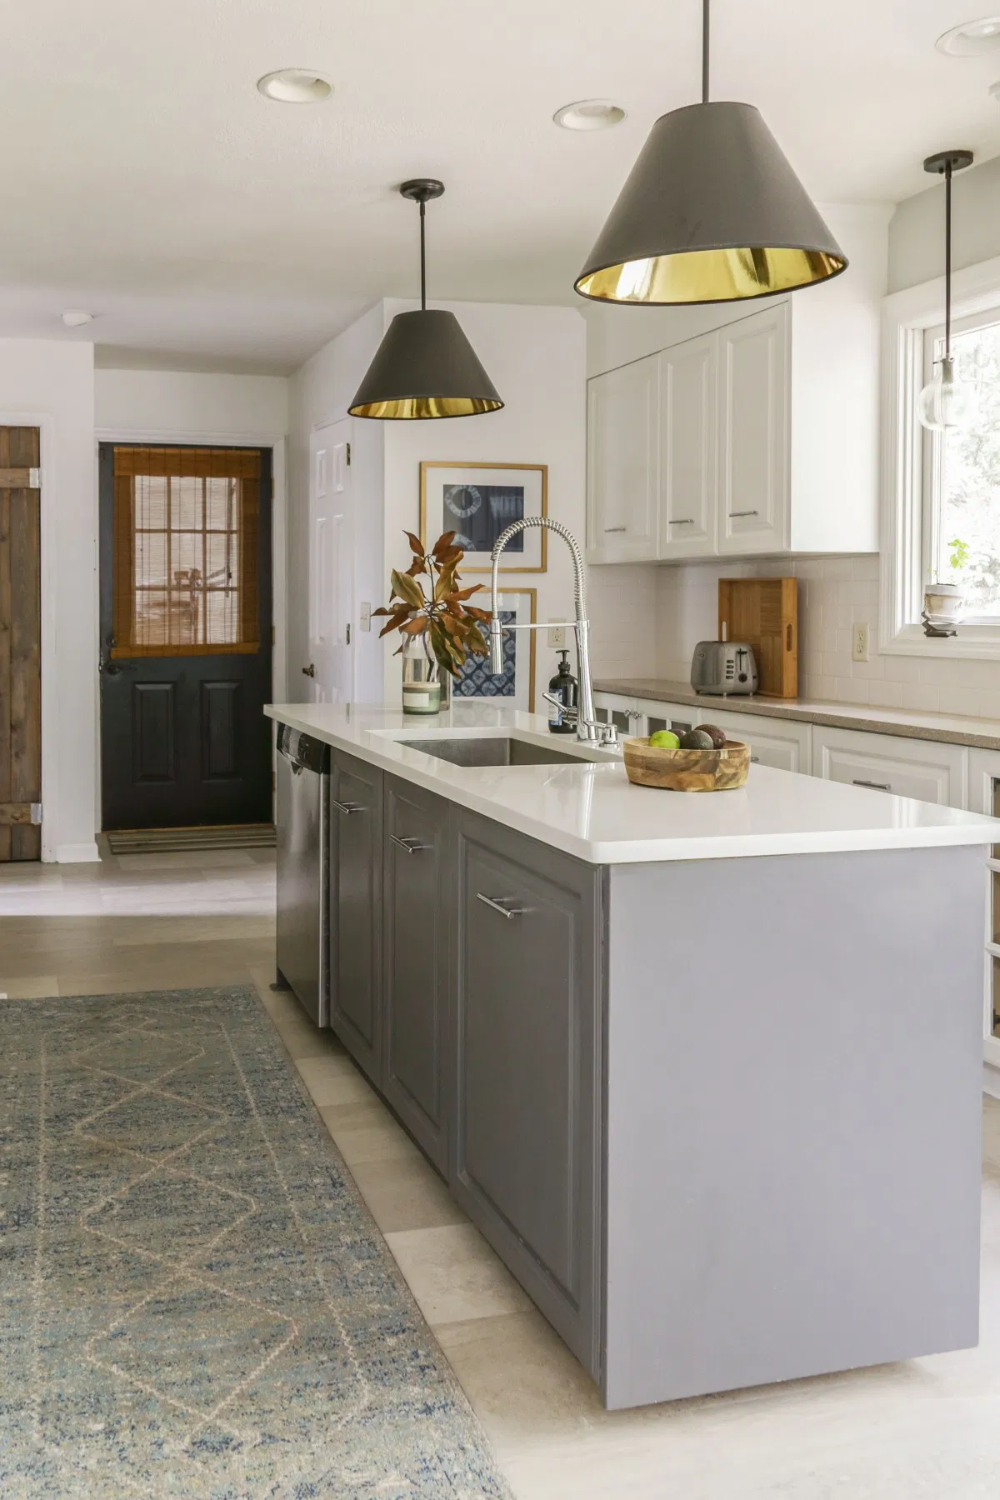 An Honest Review of My Milk Paint Kitchen Cabinets One ...